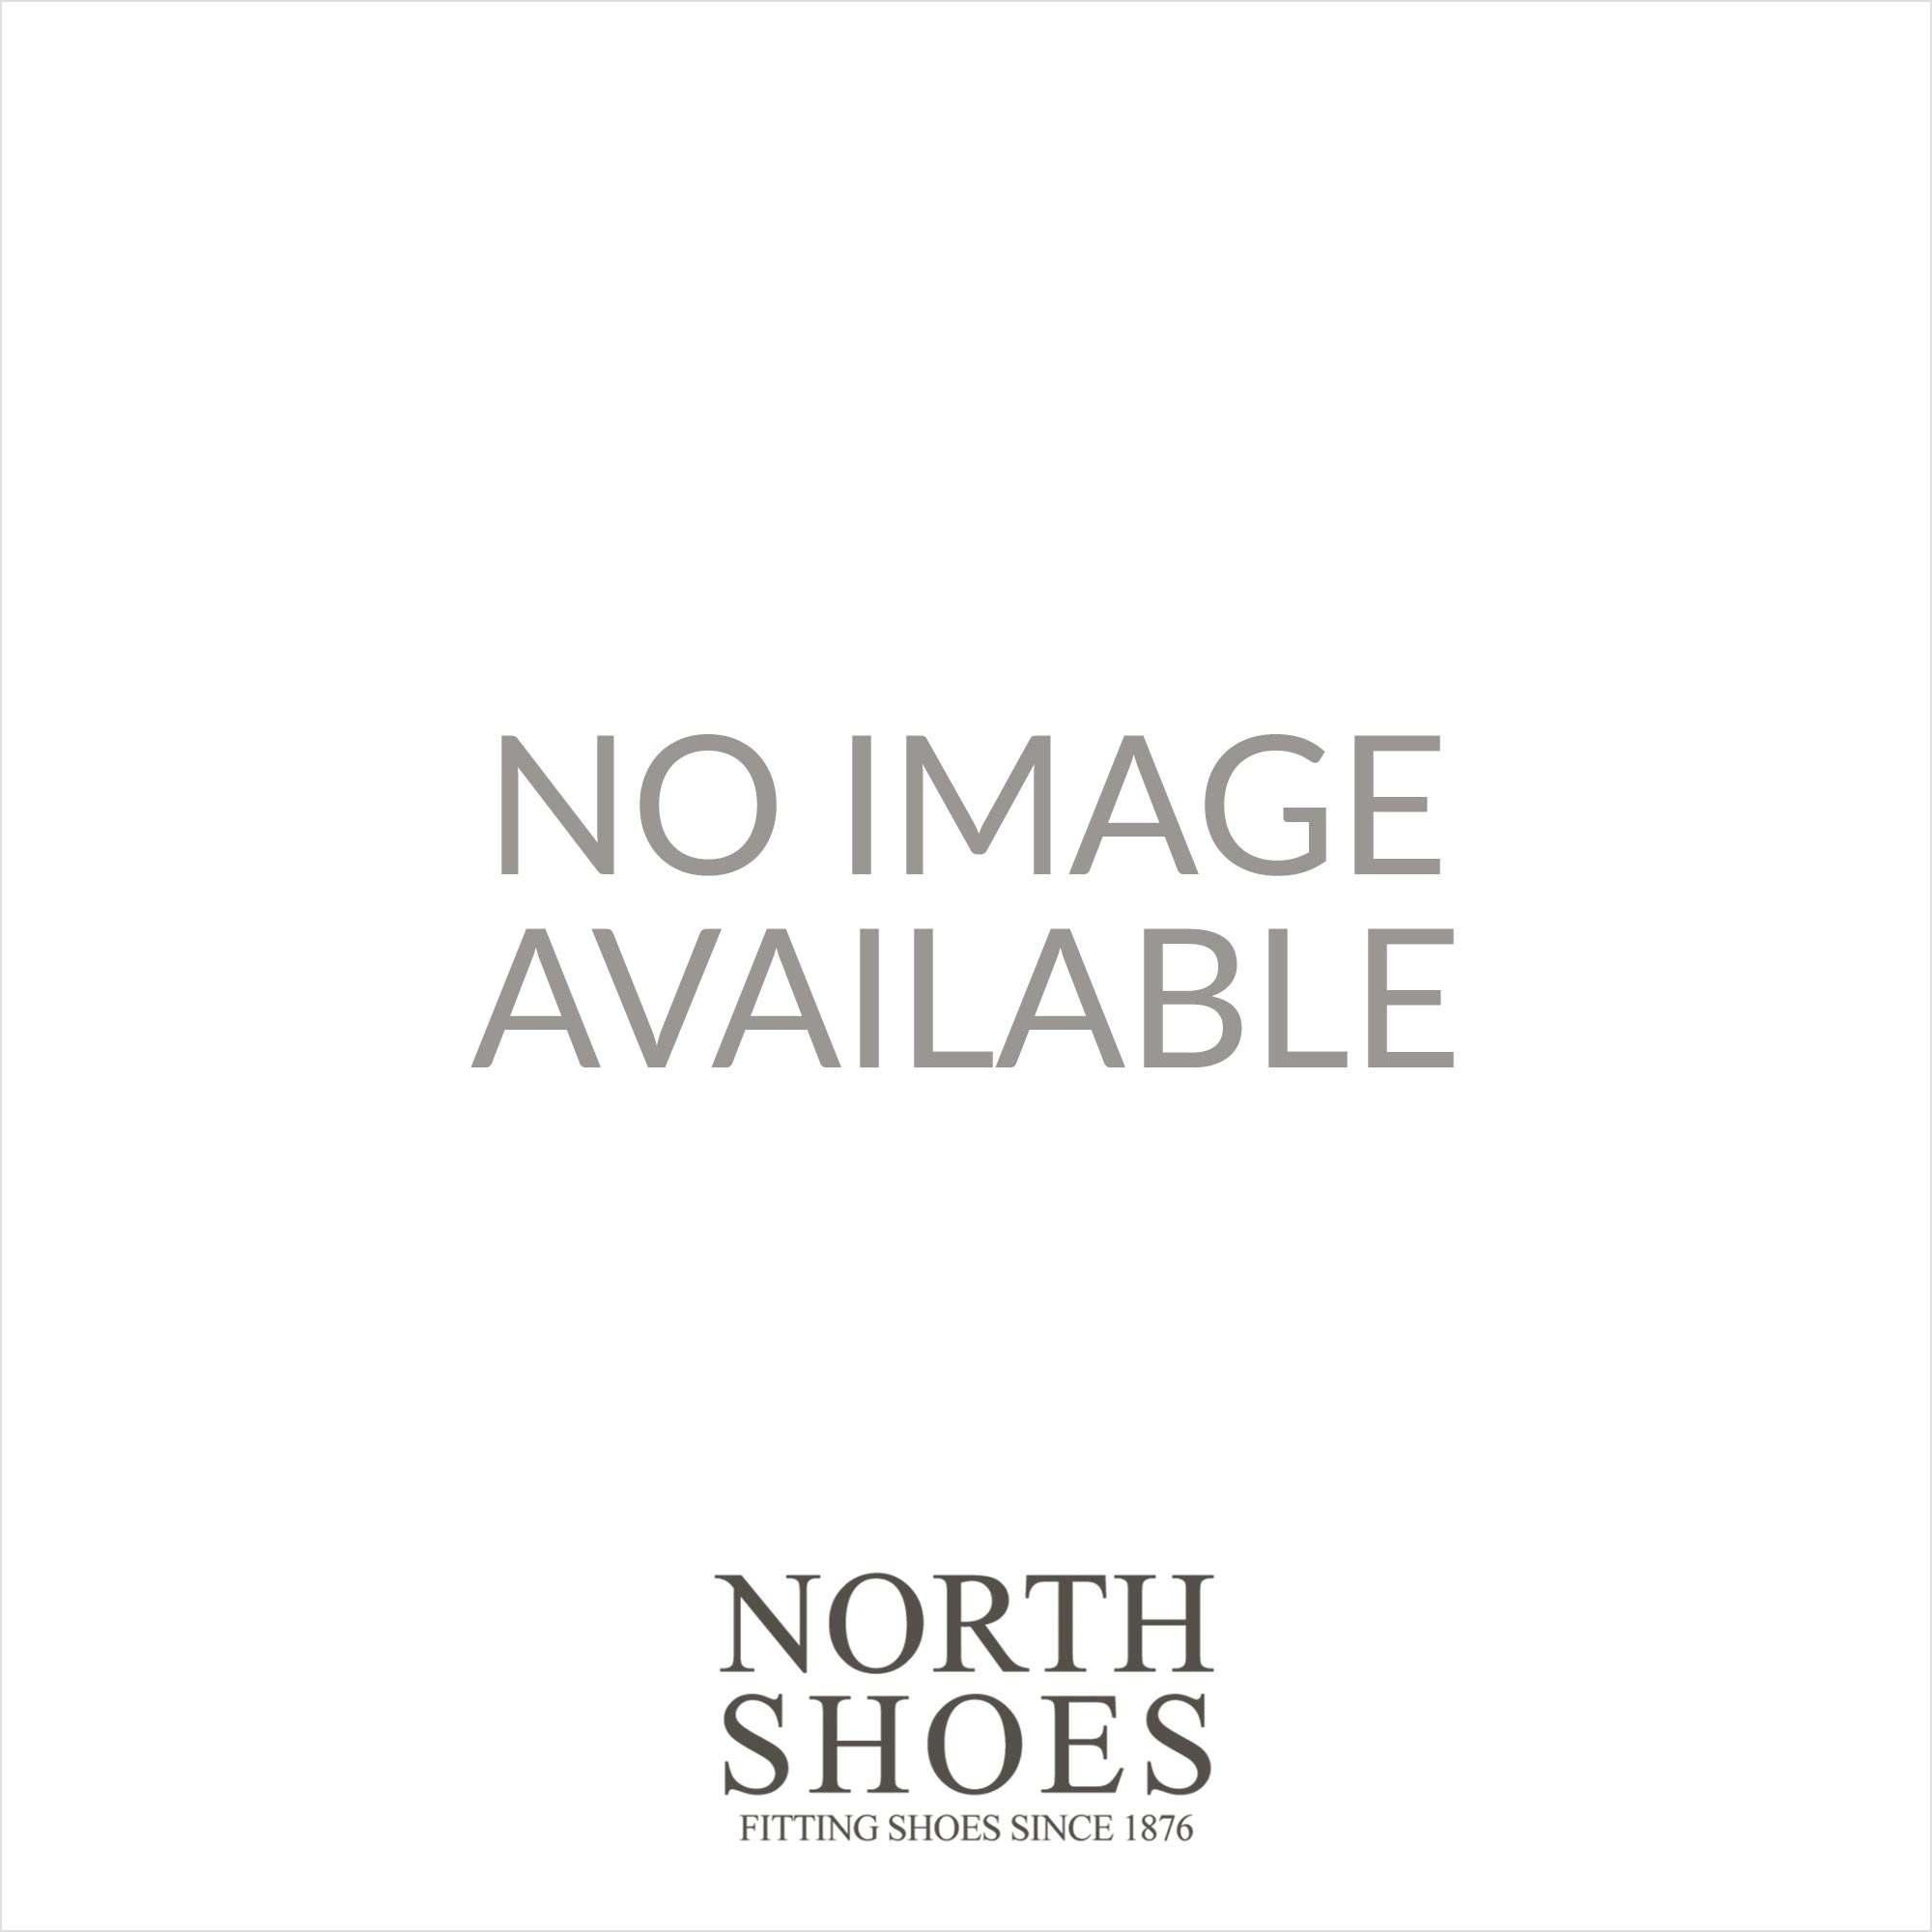 5025e0b1d42 Clarks Orinoco River Black or Brown Suede Leather Womens Mid Calf Boots